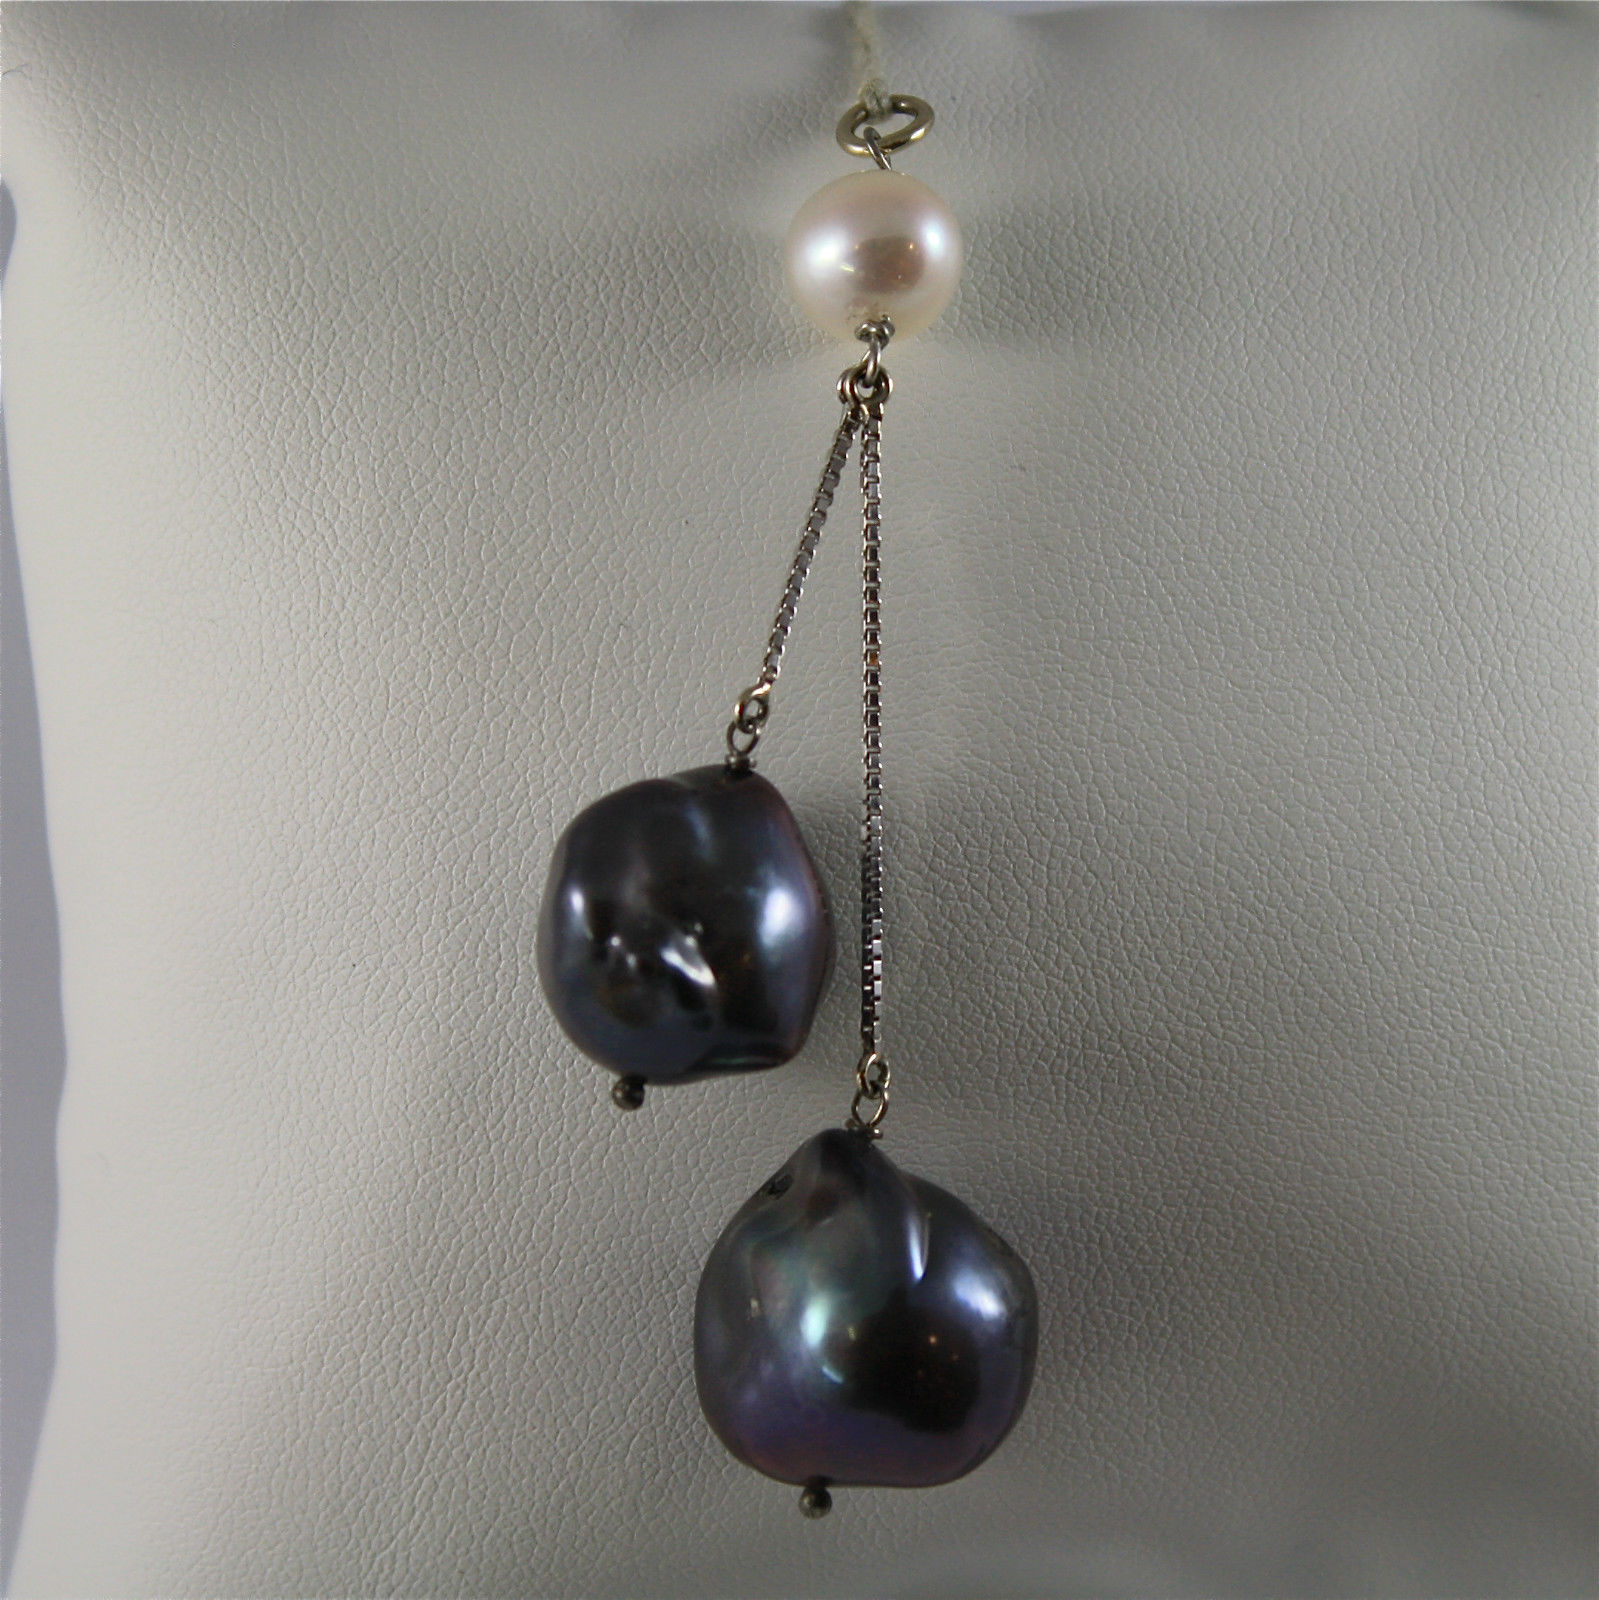 White Gold Pendant 750, 18k, Pearl White and Two Baroque Pearls, Black